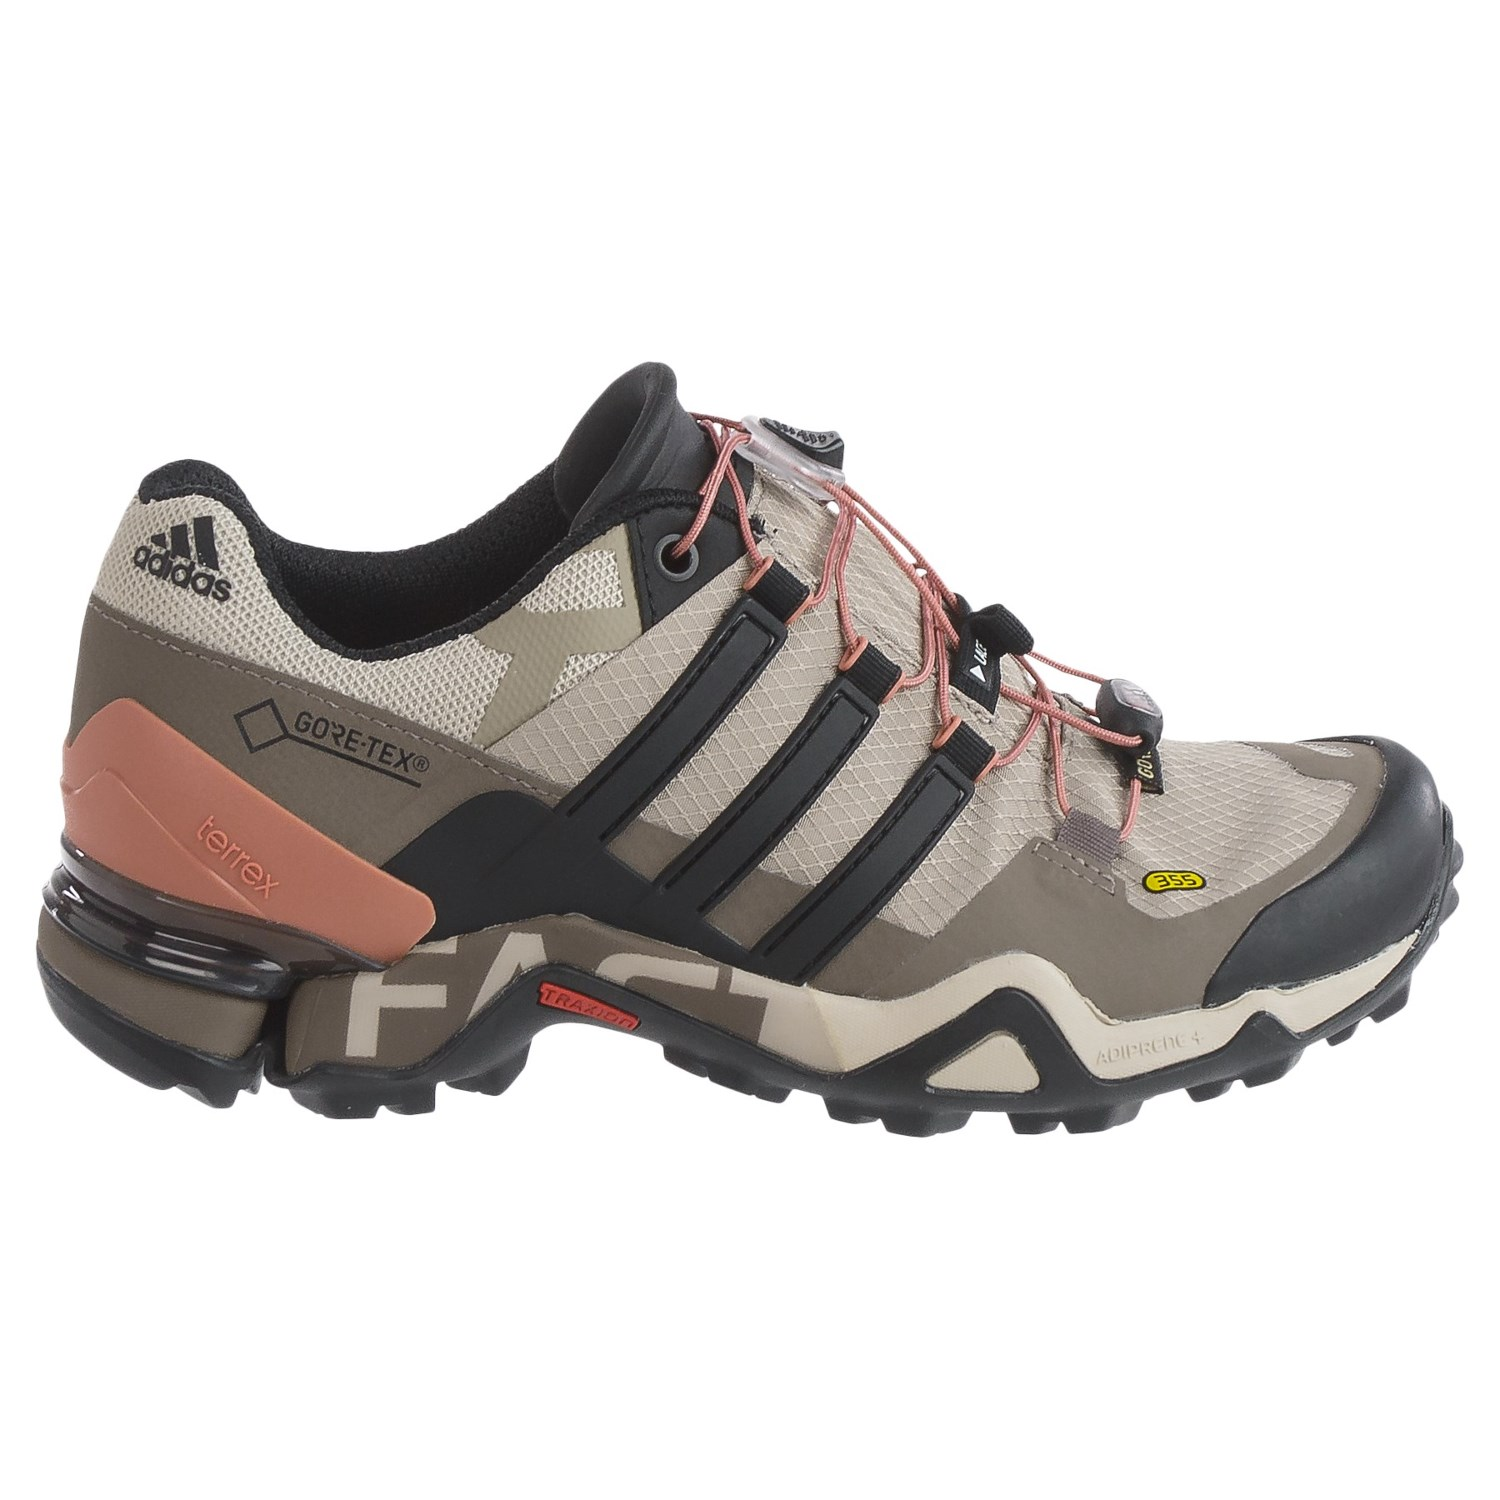 Adidas Women S Ax Gore Tex Shoe